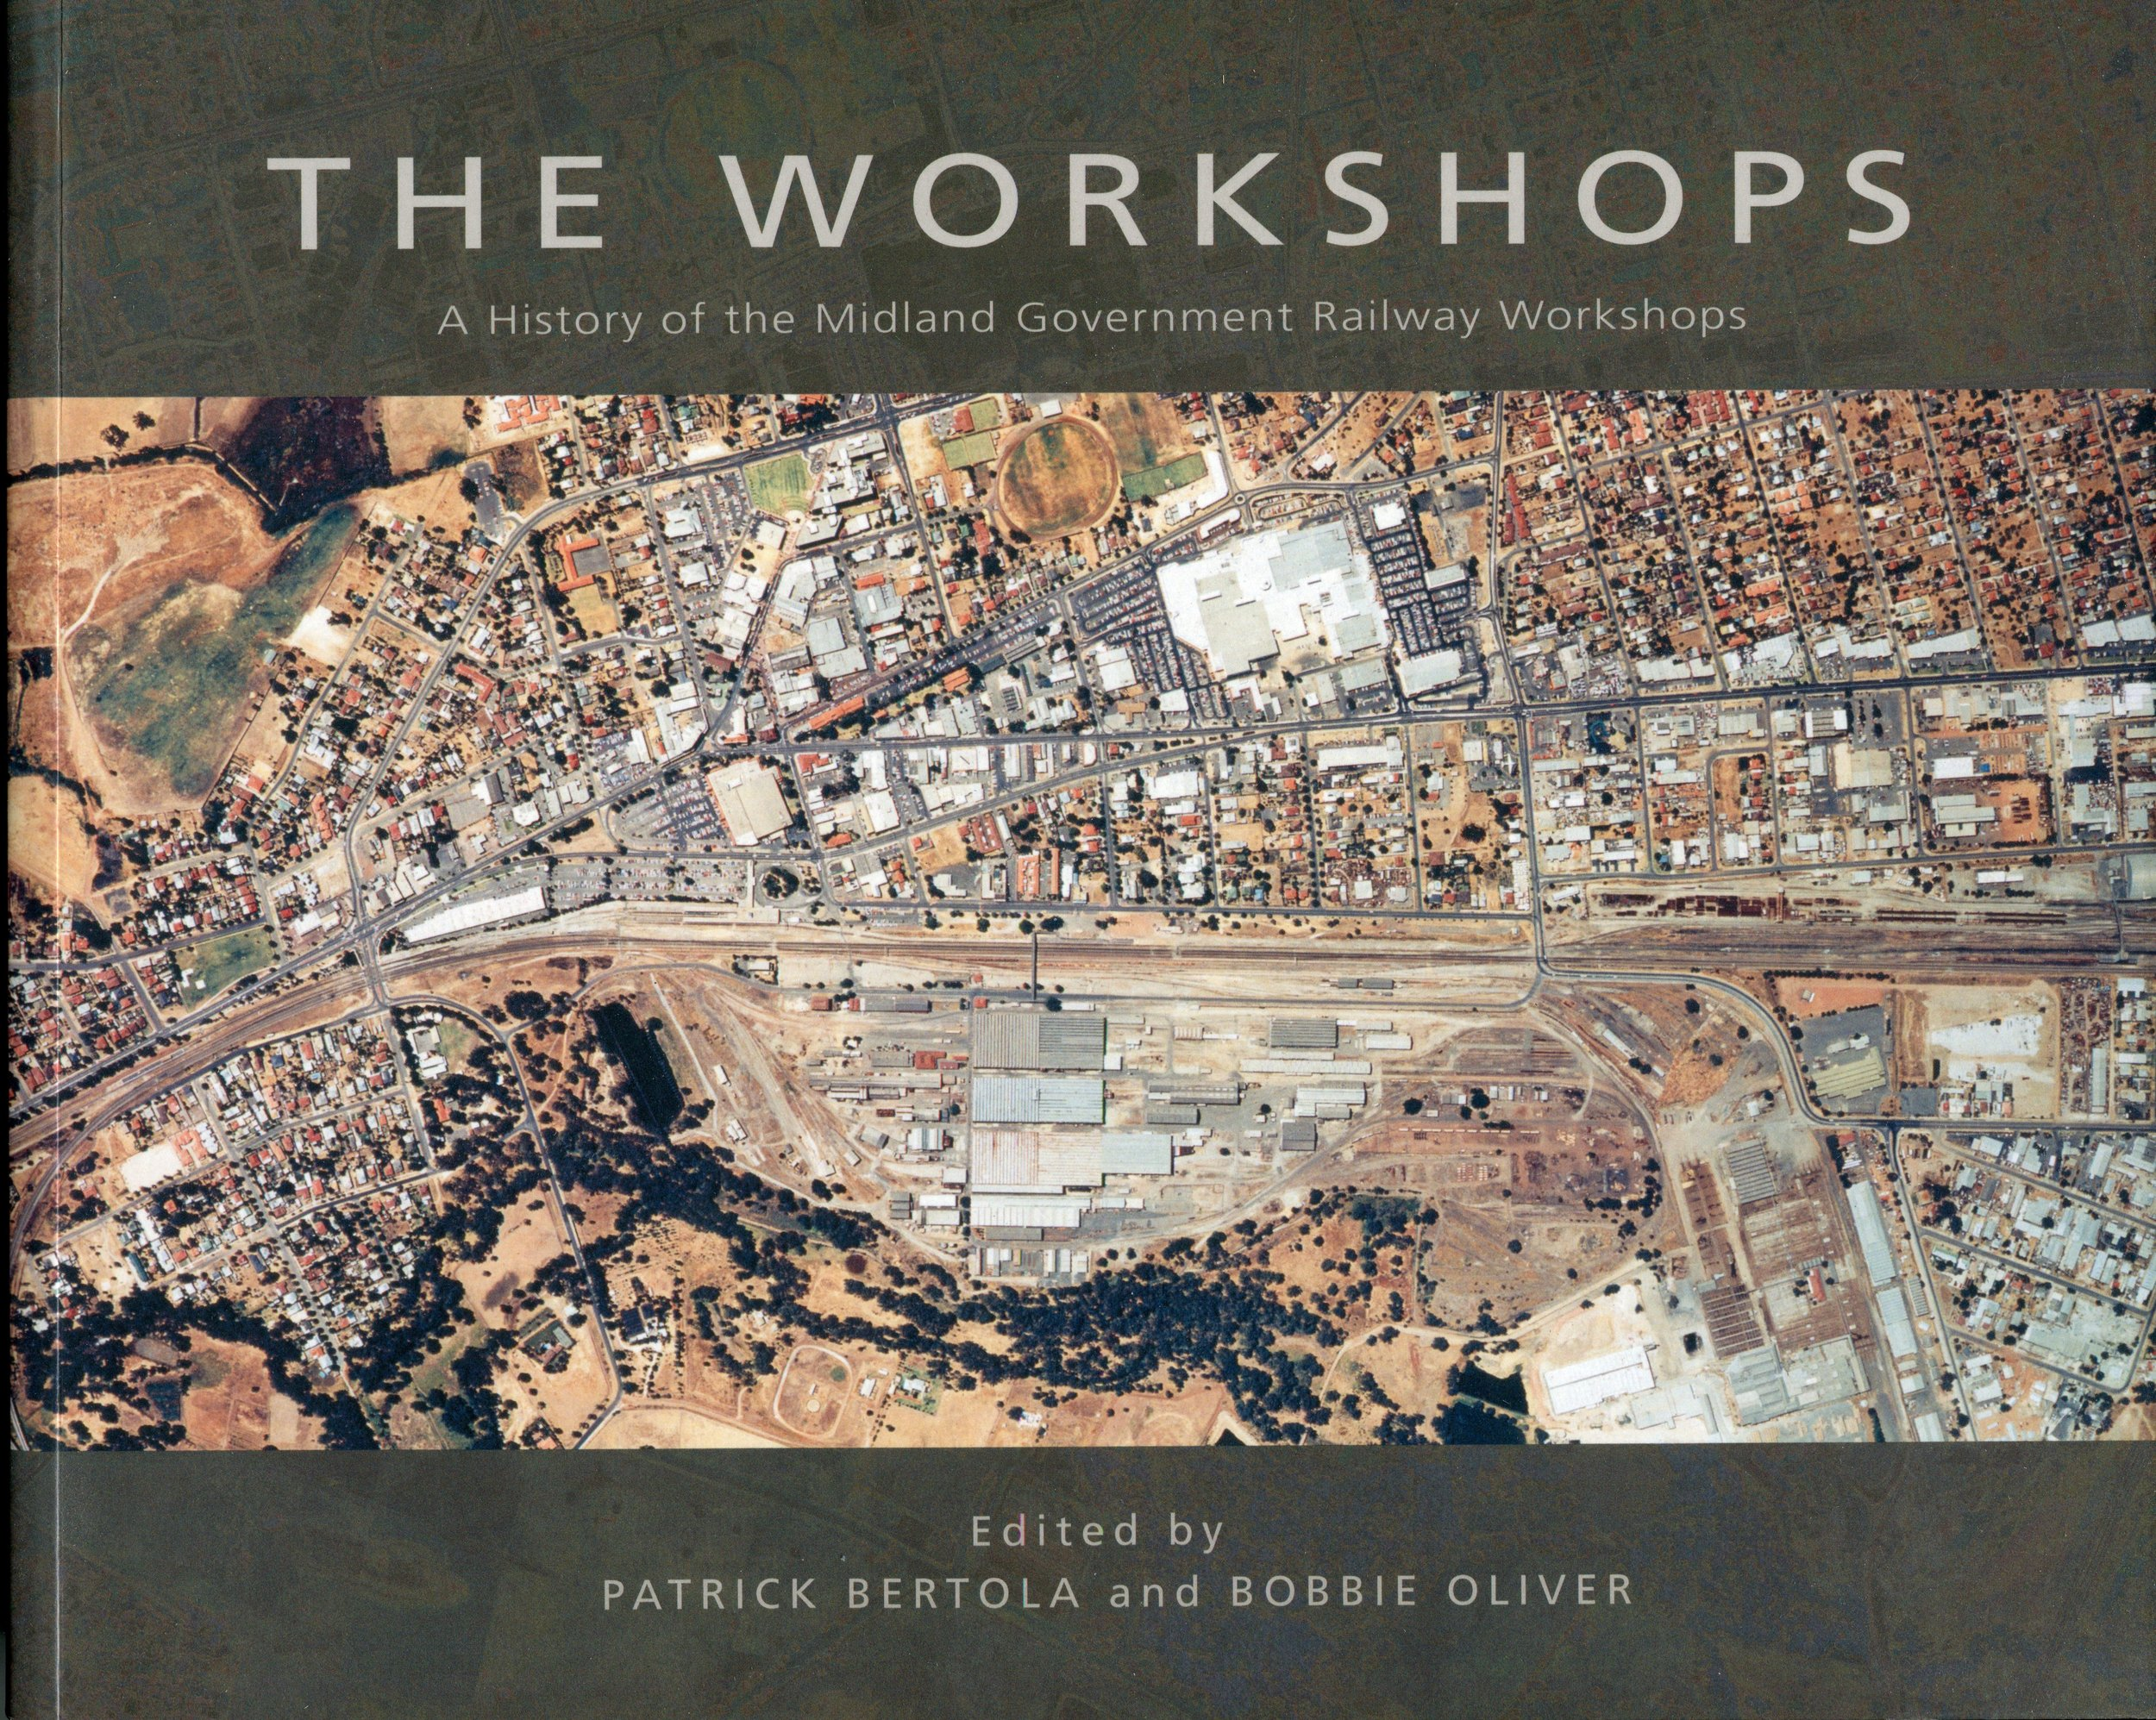 The workshops : a history of the Midland Government Railway Workshops   Edited by Patrick Bertola and Bobbie Oliver.